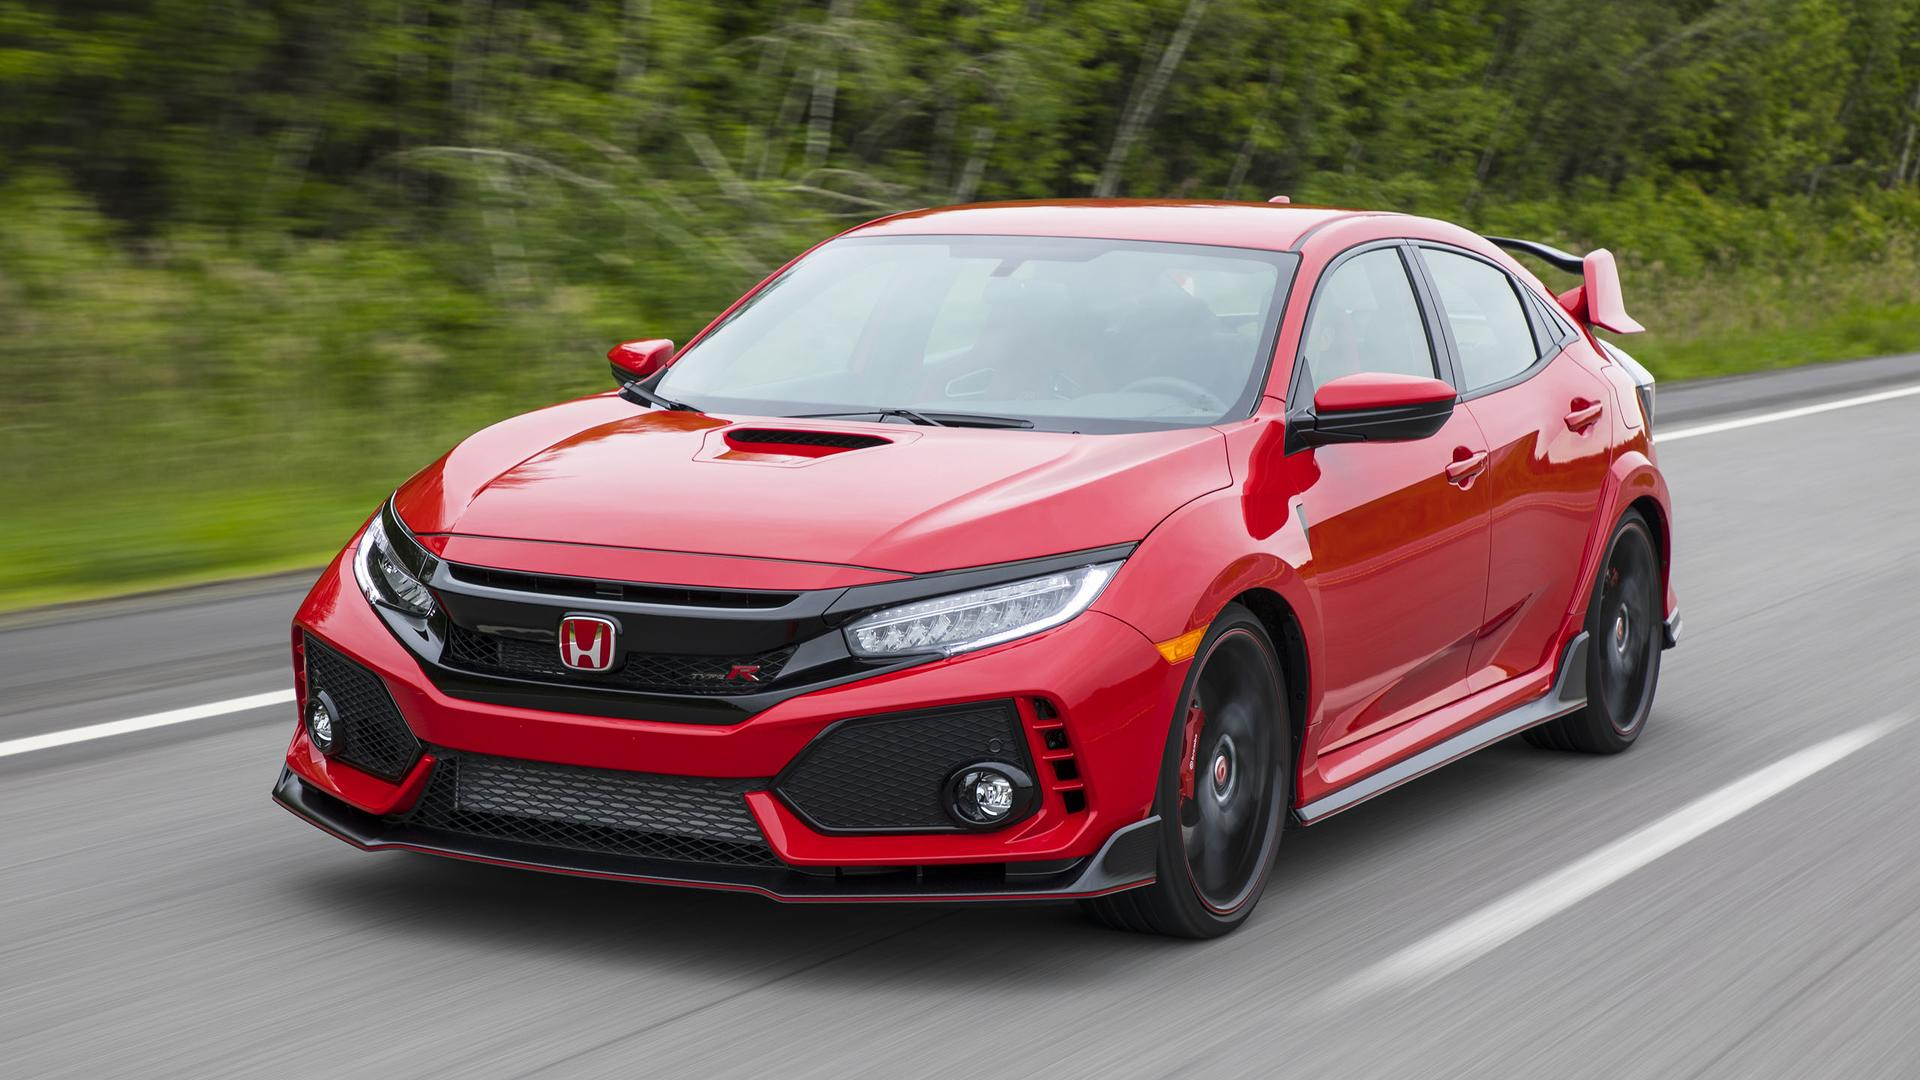 2018 Honda Civic Type R Up By 605 But Still Undercuts Rivals